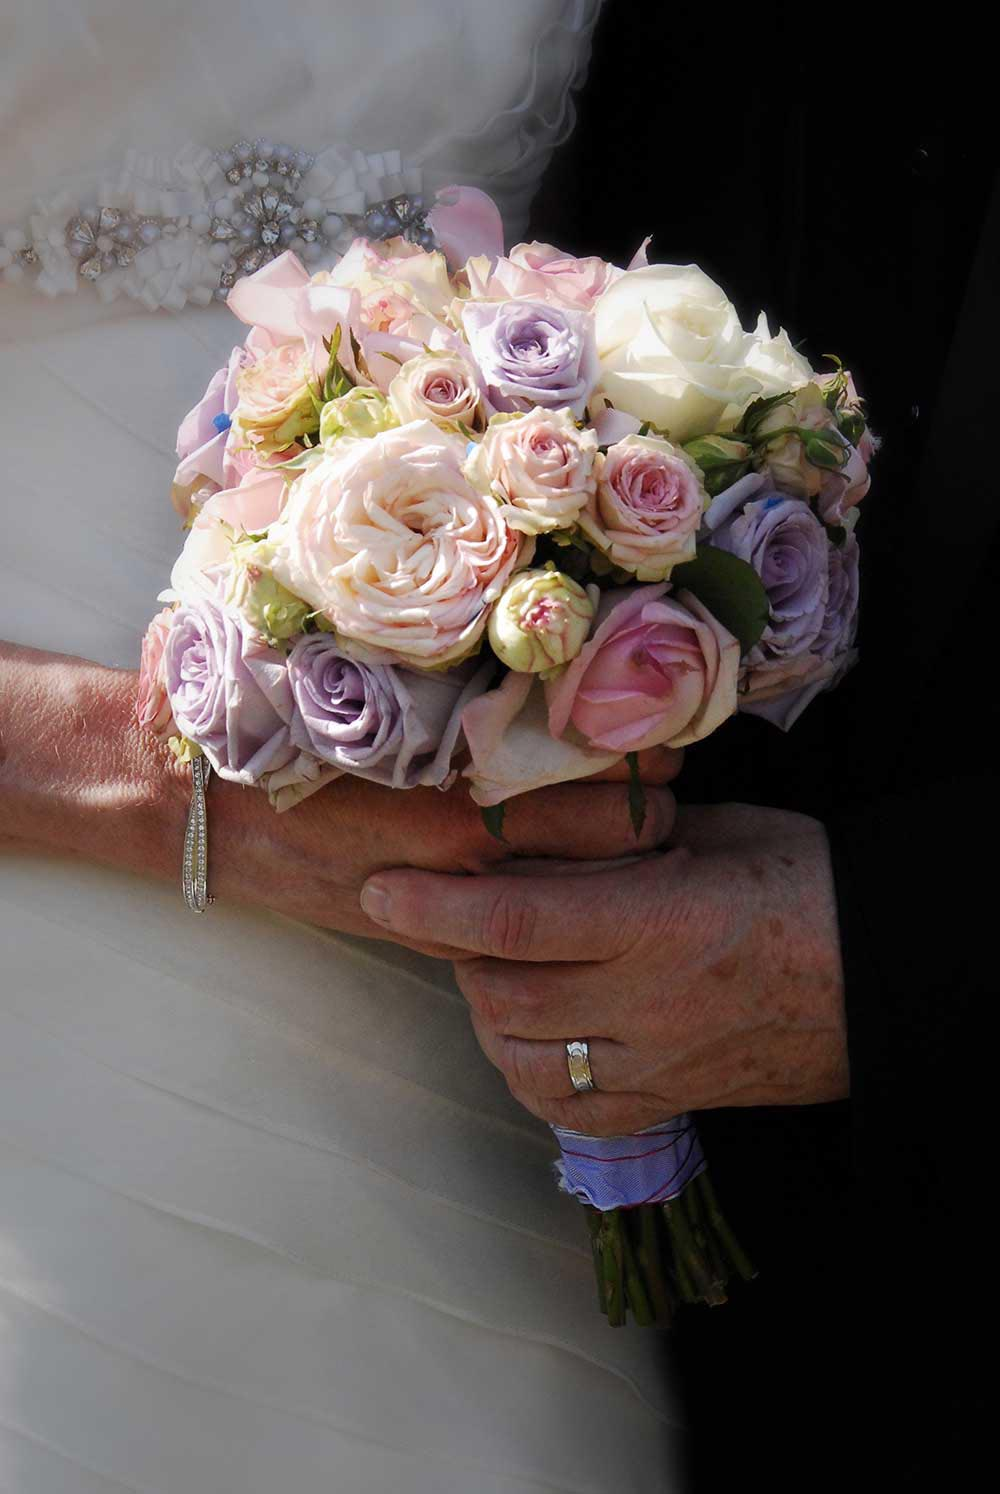 Wedding bouquet held both by bride and groom